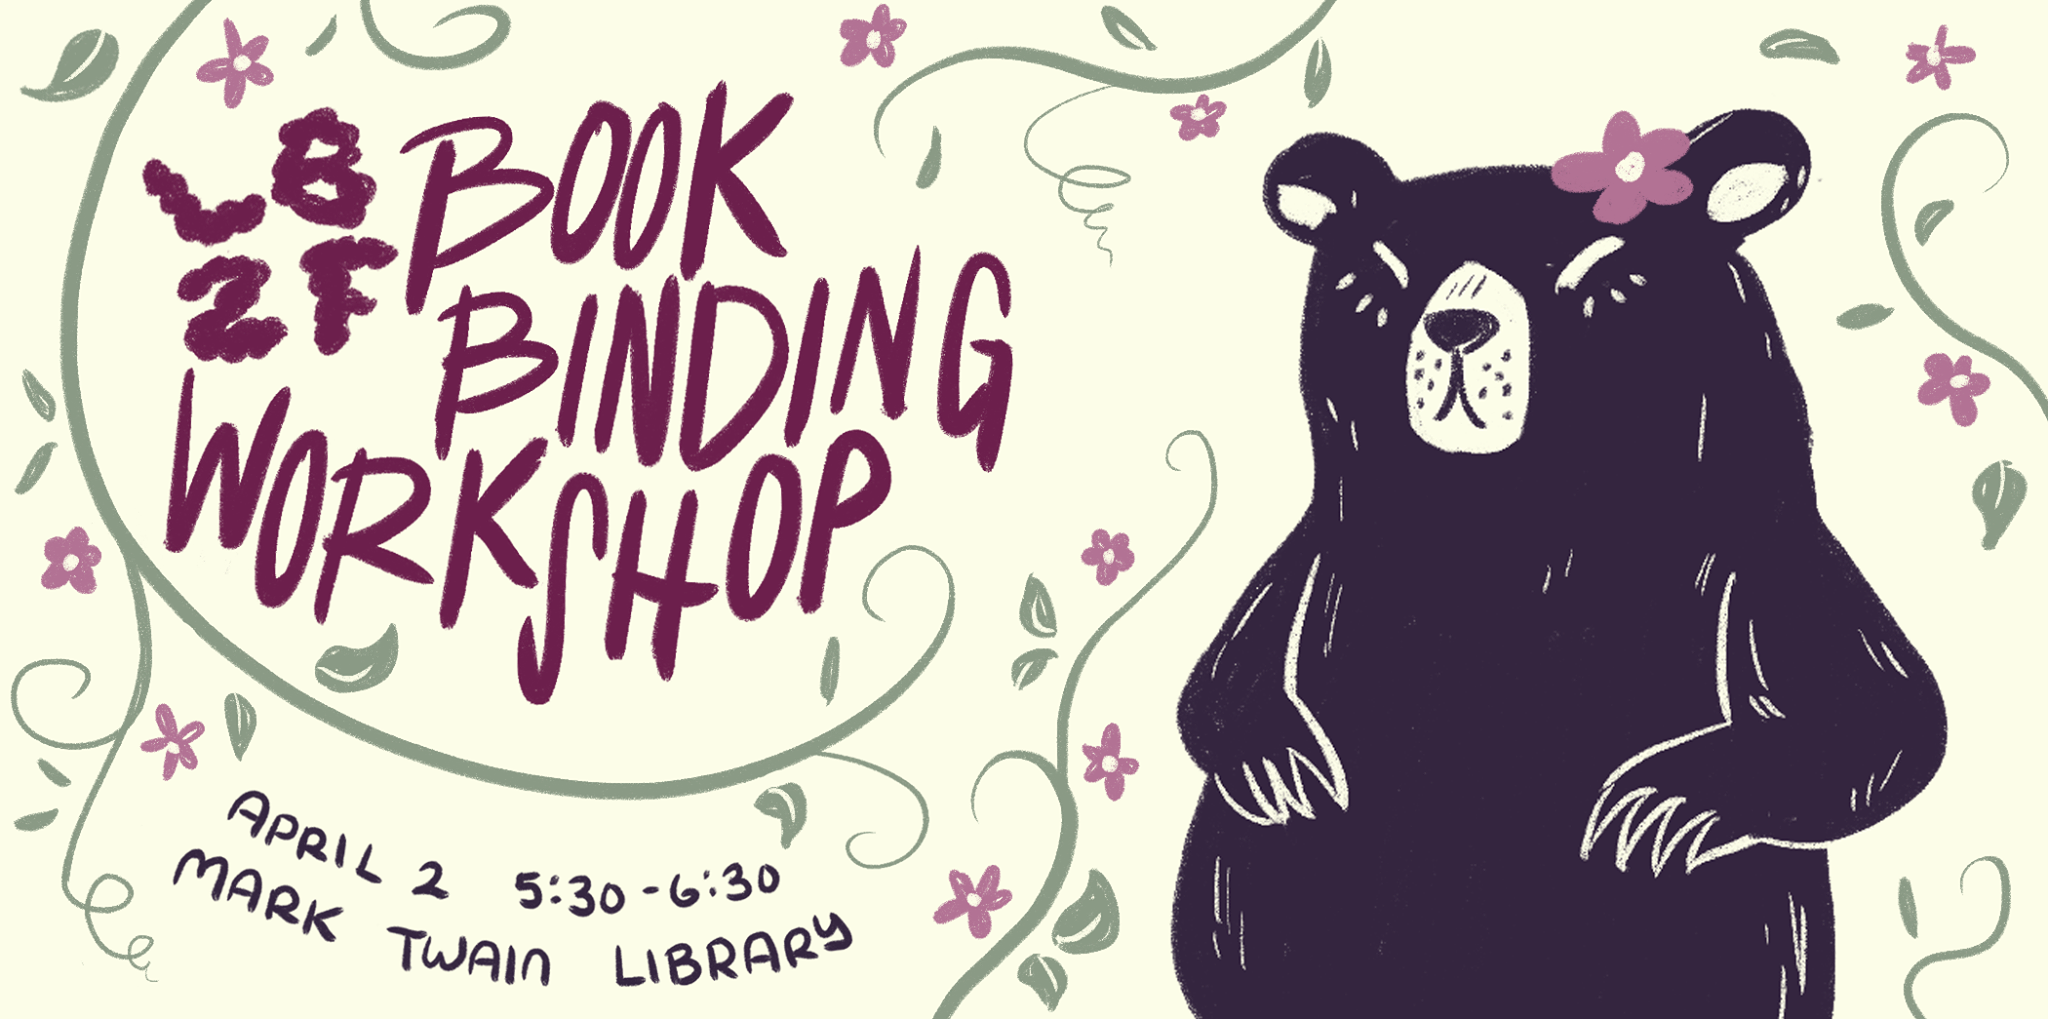 LBZF 2015 pre-event bookbinding workshop